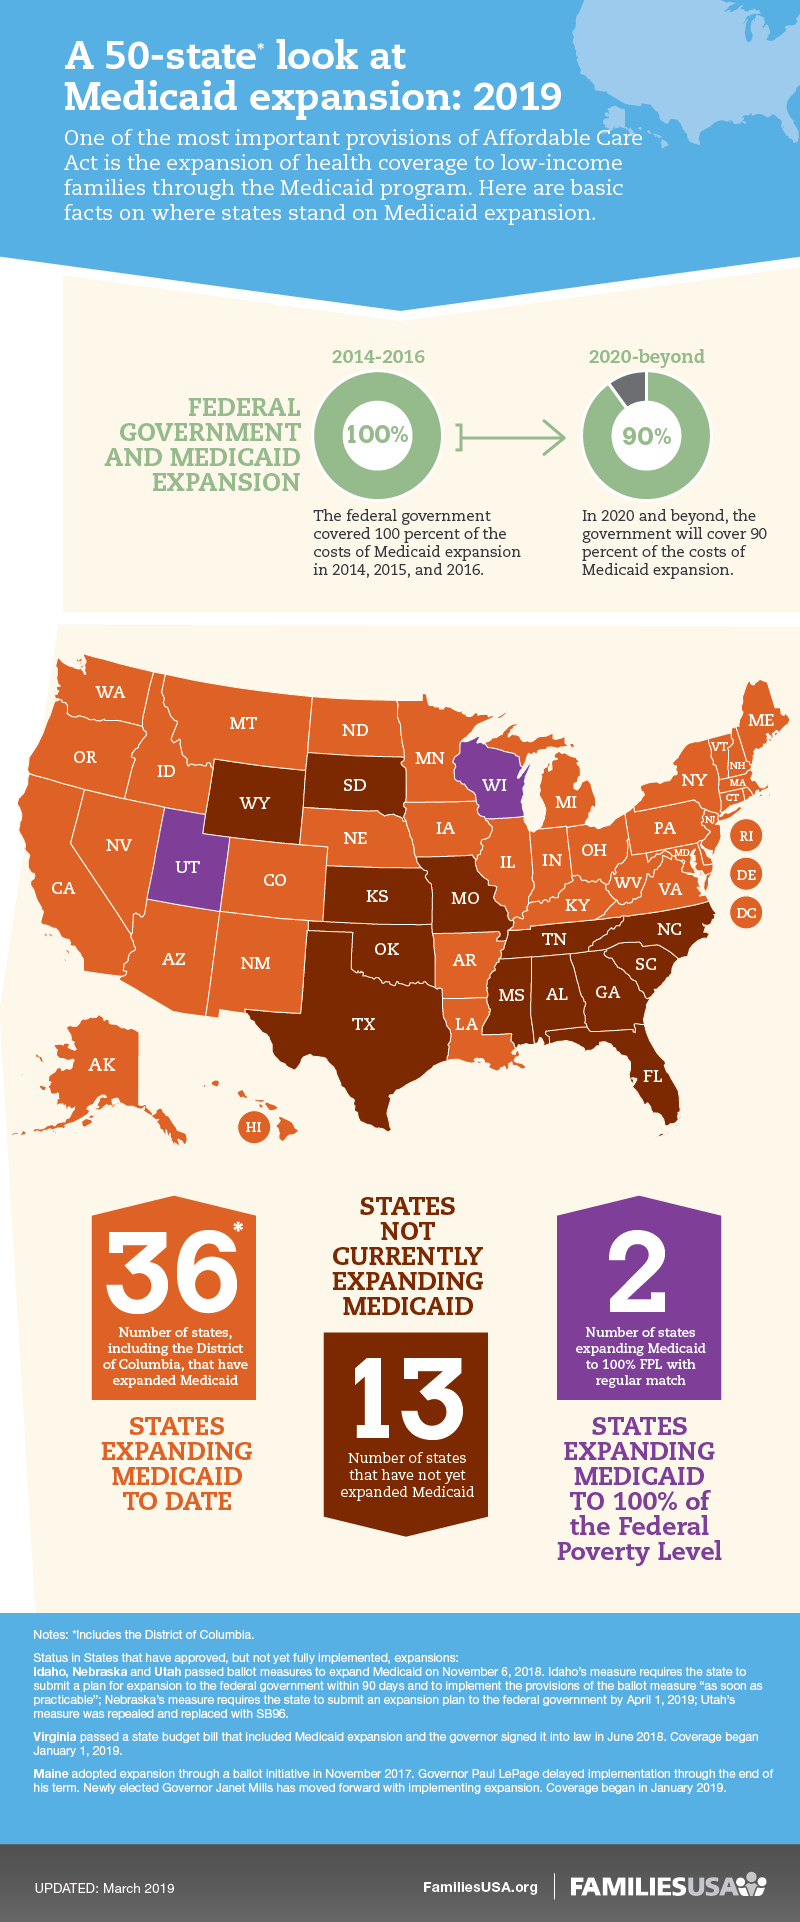 https://www.familiesusa.org/wp-content/uploads/2018/11/MCD_Medicaid-Expansion-50state-Map_Infographic_030819_infographic.png